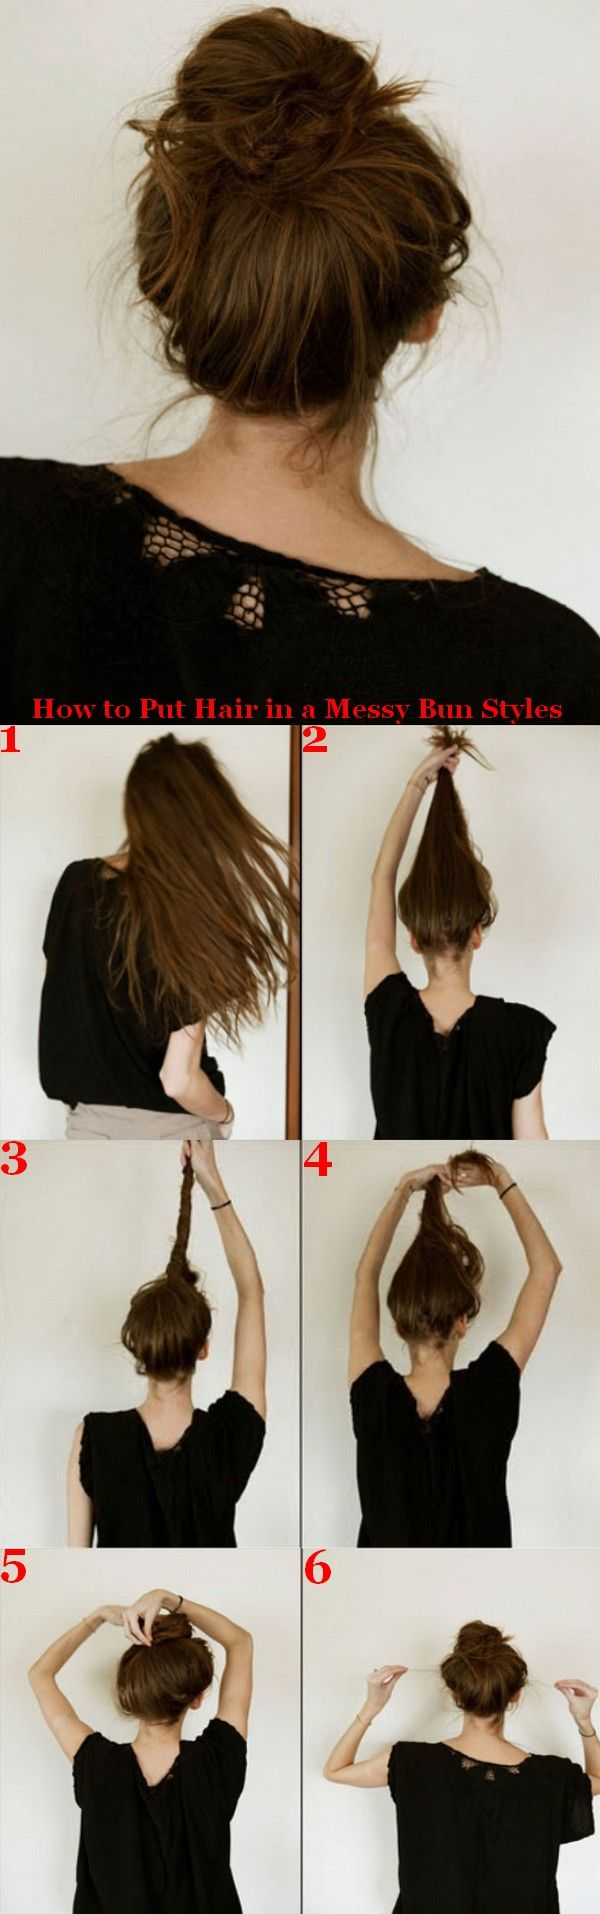 How to put hair in a messy bun styles hair care tips how to put hair in a messy bun styles cute messy hairstyleseasy hairstyles for thin pmusecretfo Gallery